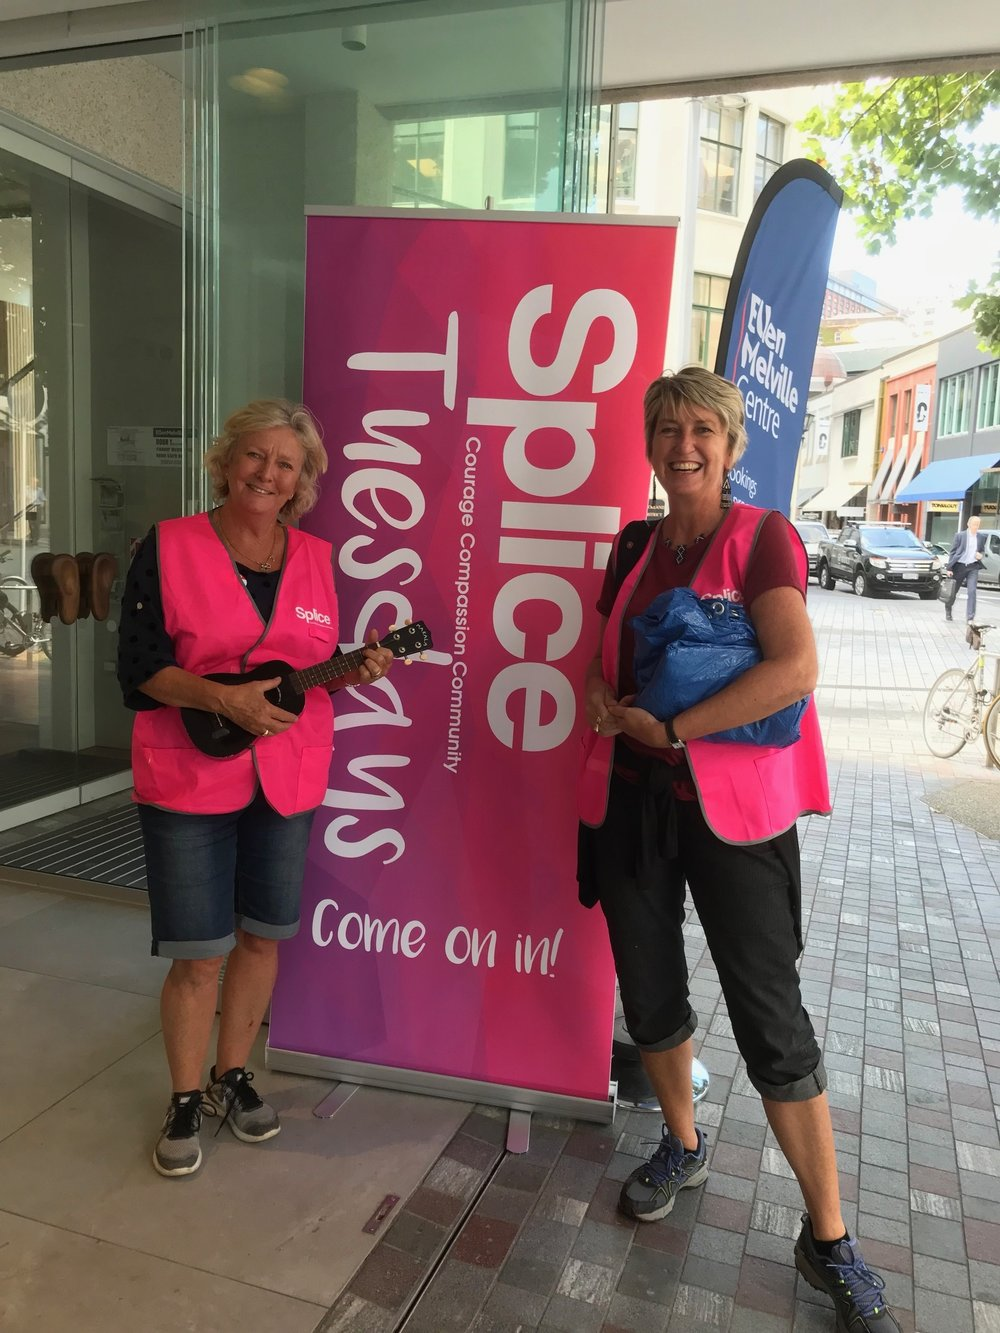 - Every Tuesday you'll find Splice down at the local community Ellen Melville community centre on the corner of Freyberg Place and High Street hosting and activating the 'urban lounge'open to the public. All our Splice activities are free. Come and join us.